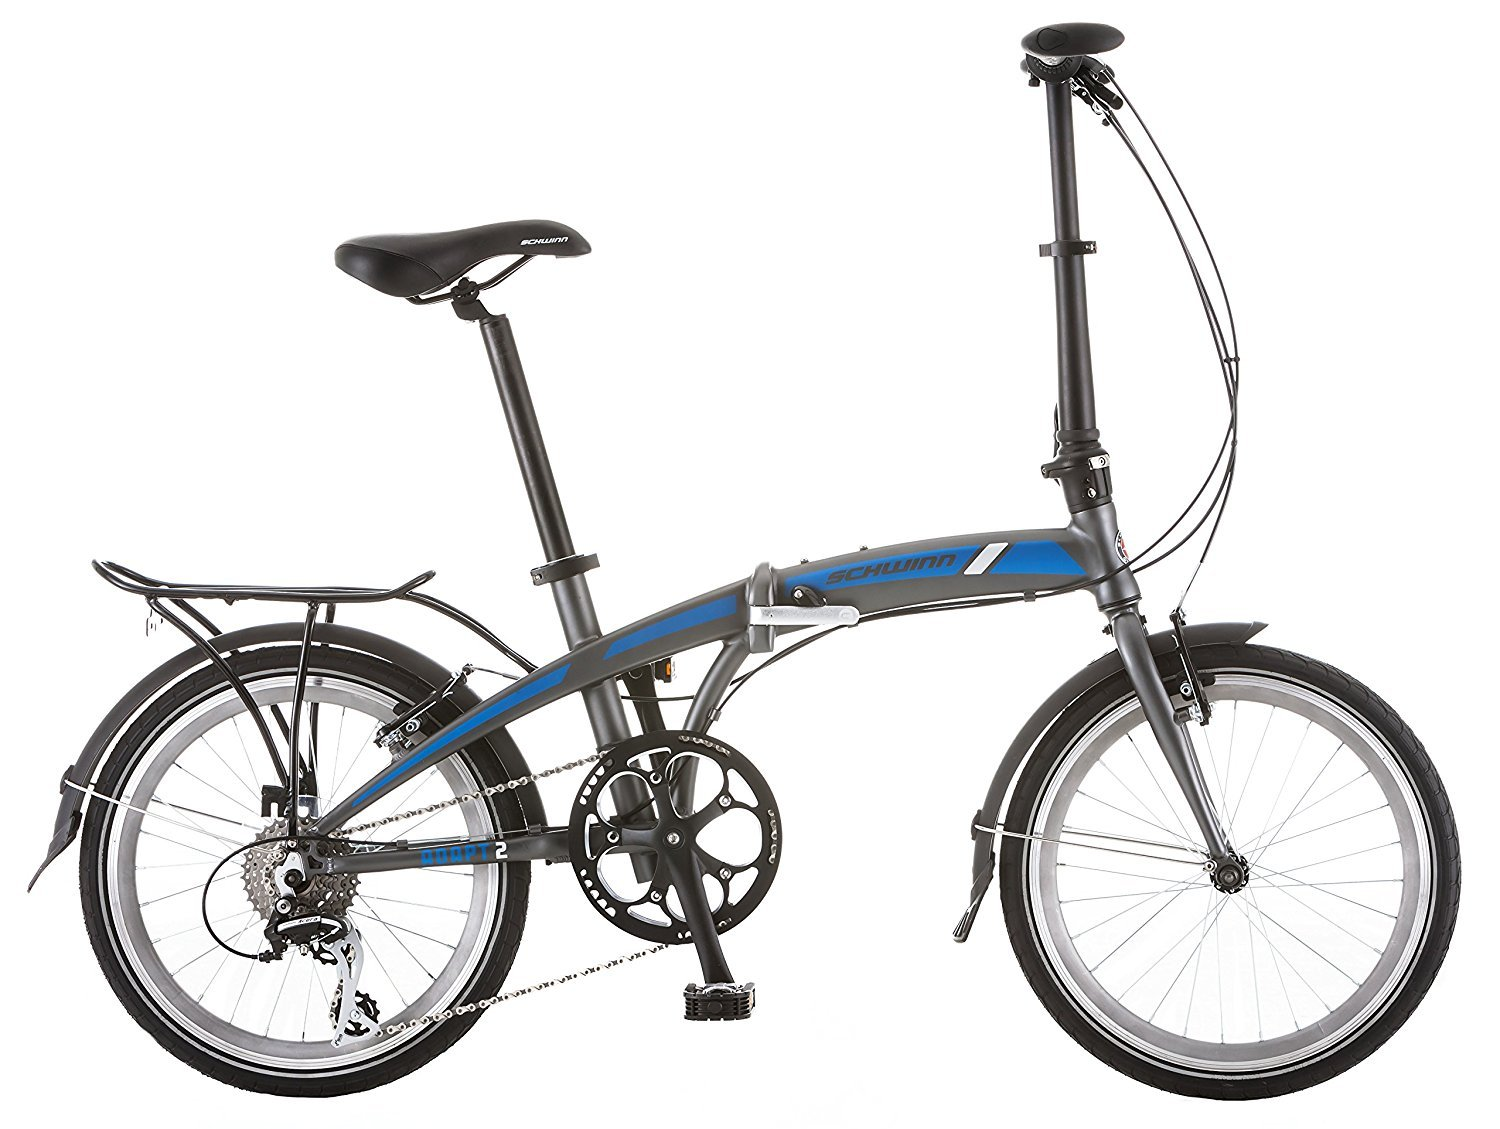 Schwinn Adapt 2 8 Speed Folding Bike Matte Charcoal 20 Wheel one size frame [並行輸入品] B072FB6J35